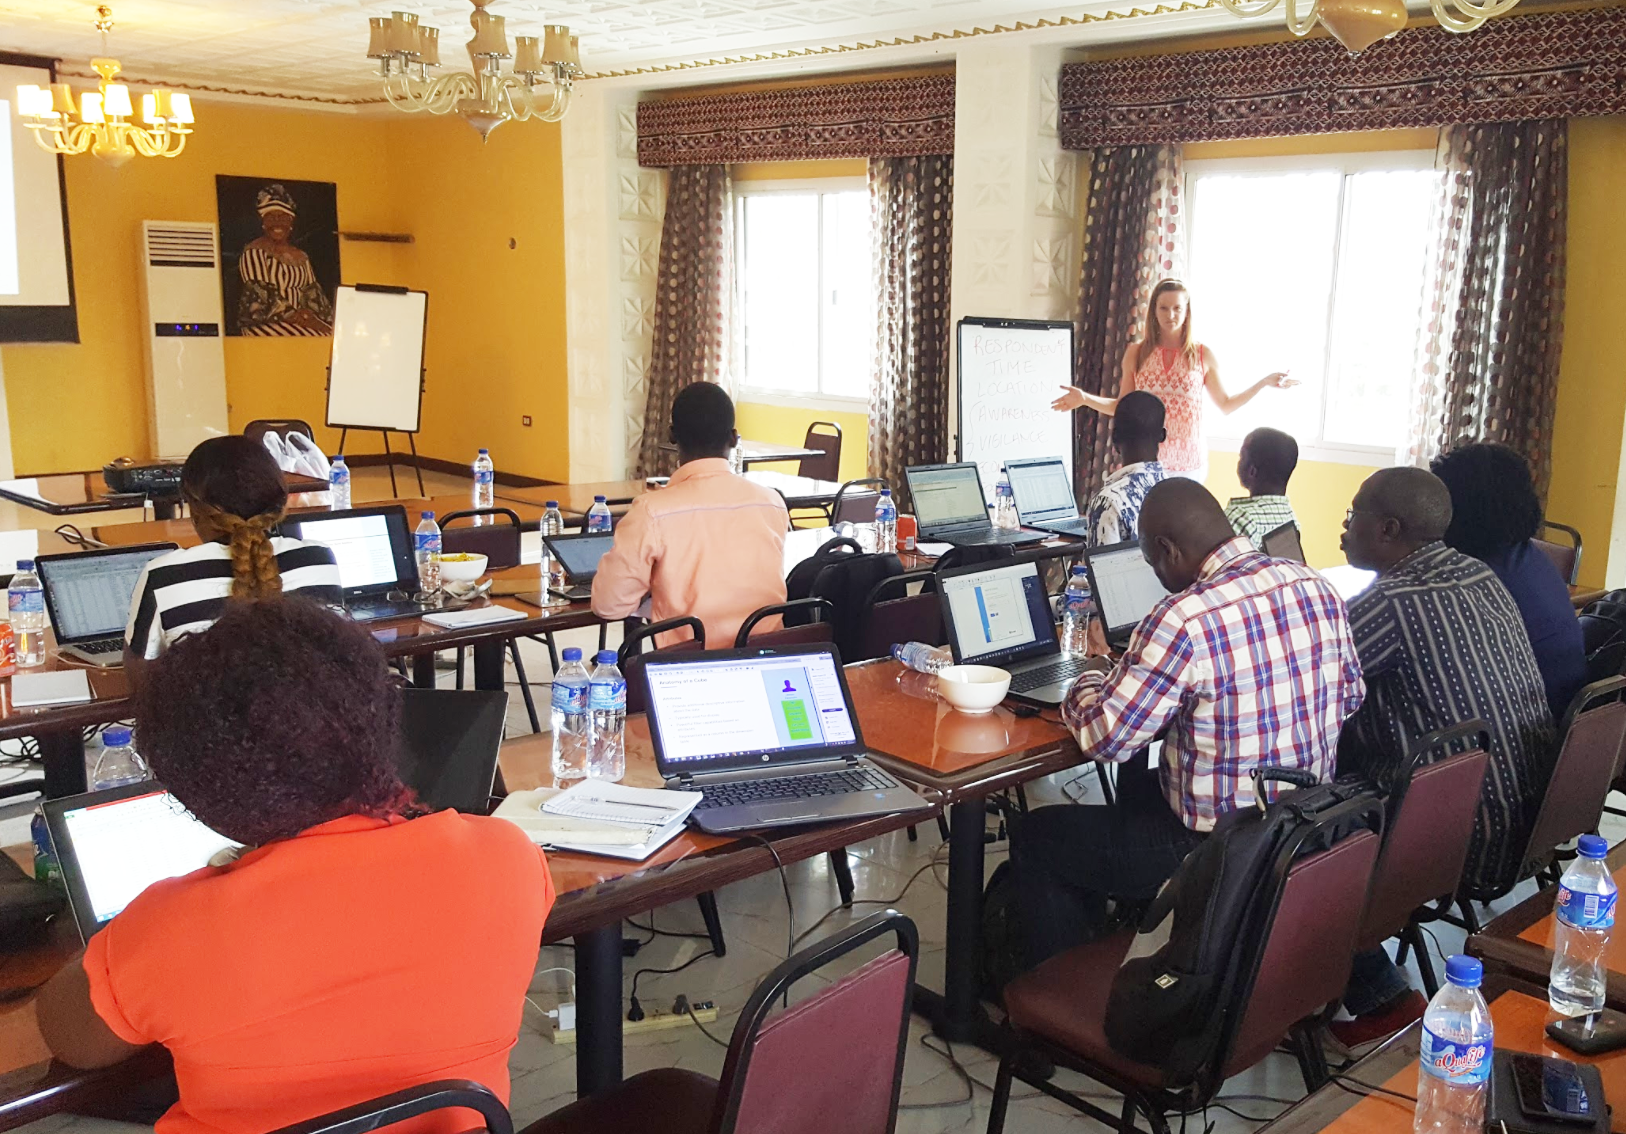 Data Management and Integration Training - Gretchen (Consultant) instructing trainees.